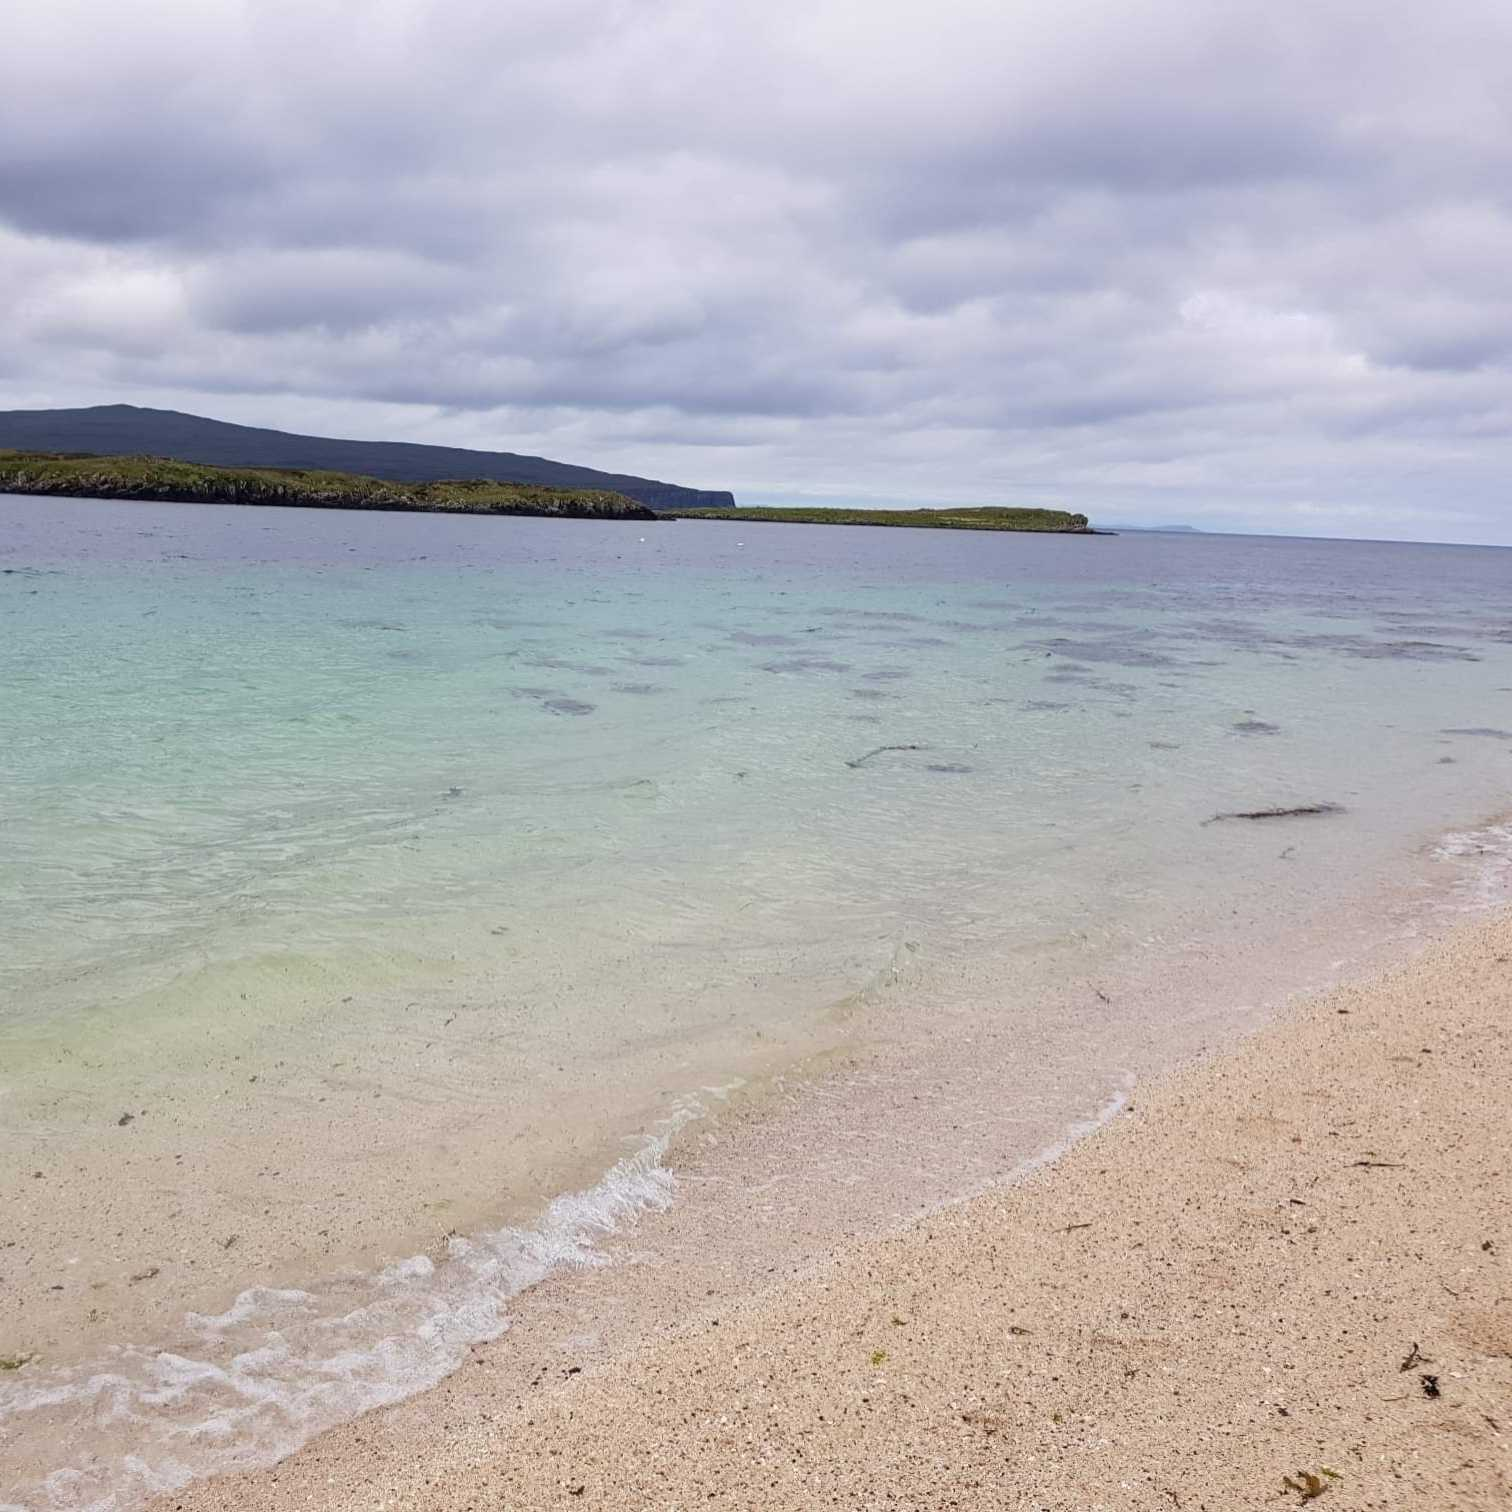 Image-of-the-white-sands-of-coral-beach-on-the-Isle-of-Skye